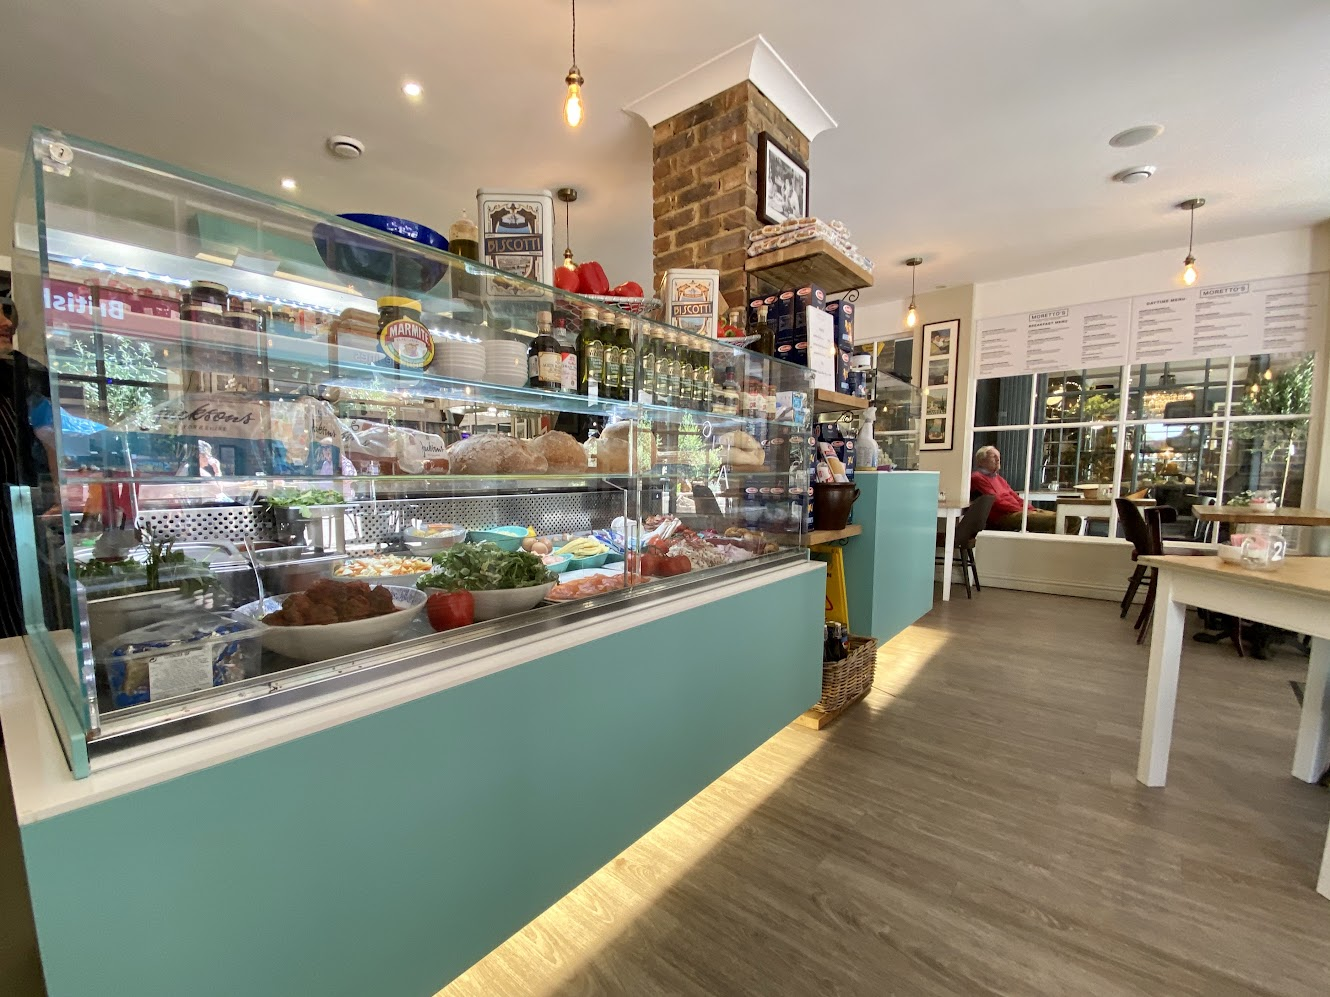 Morettos Italian Cafe and Deli, Sayers Lane Tenterden